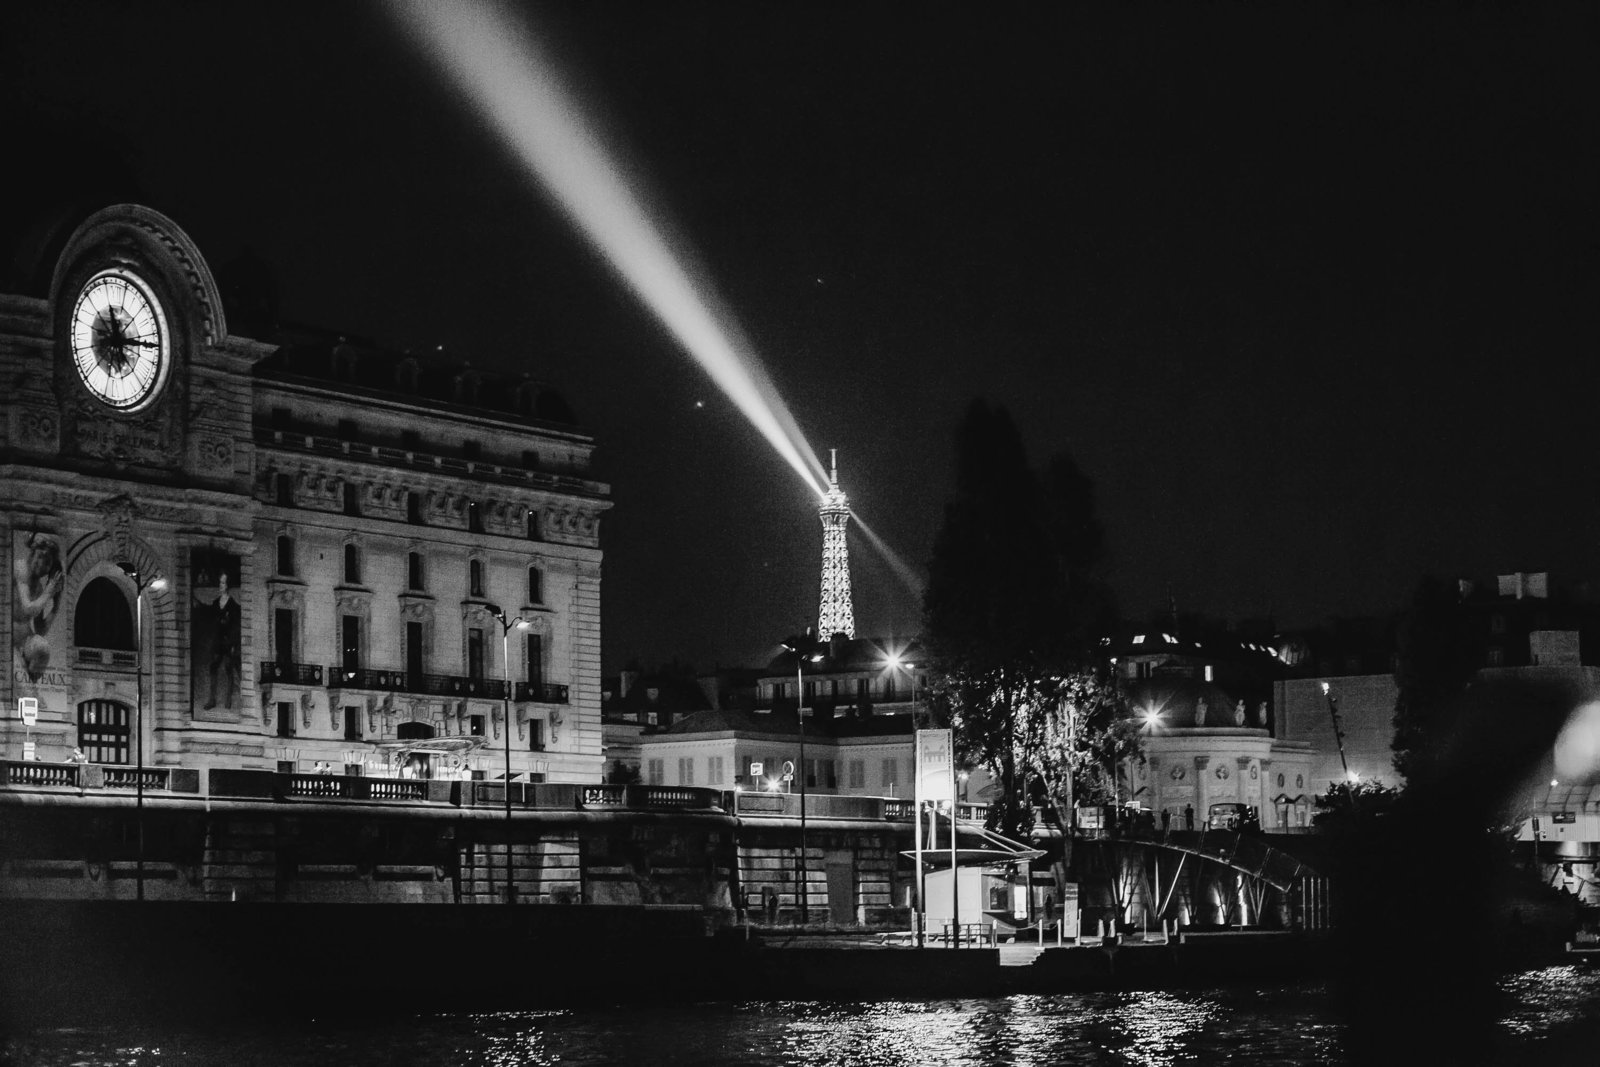 musee-dorsay-night-paris-france-travel-destination-wedding-kate-timbers-photography-1846